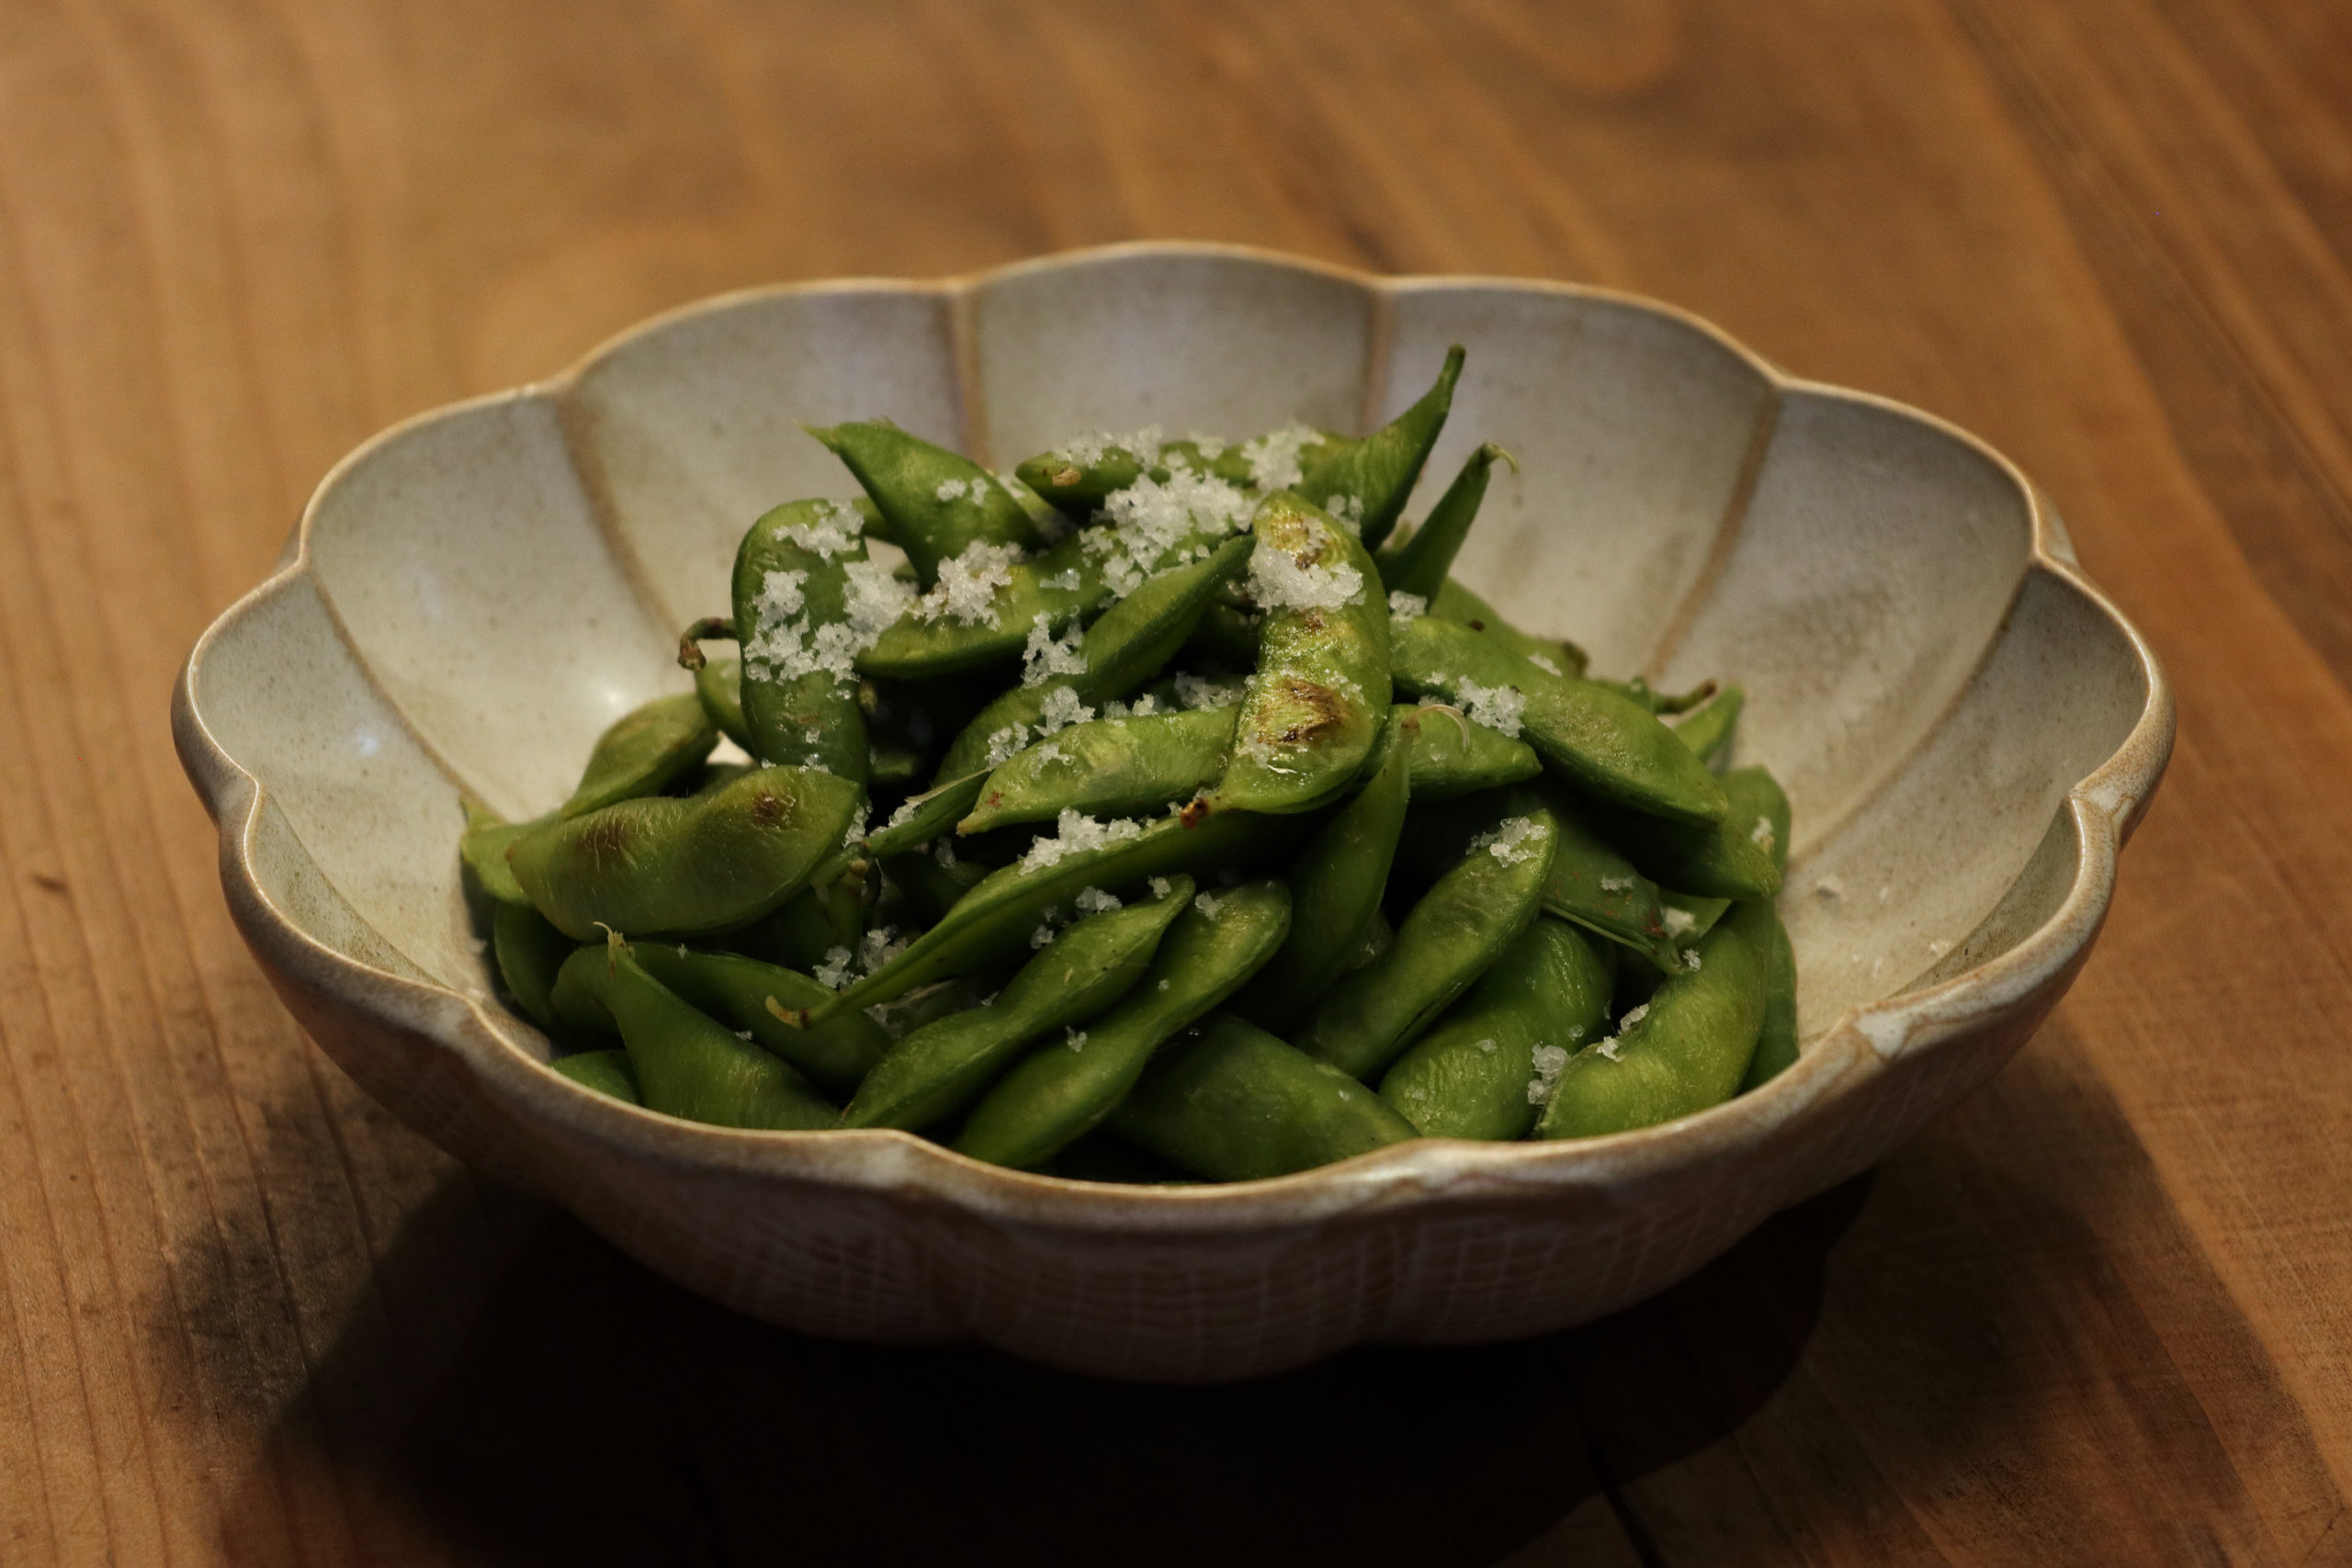 https://www.milkbar.jp/wp/wp-content/uploads/2020/08/food_edamame-scaled.jpg